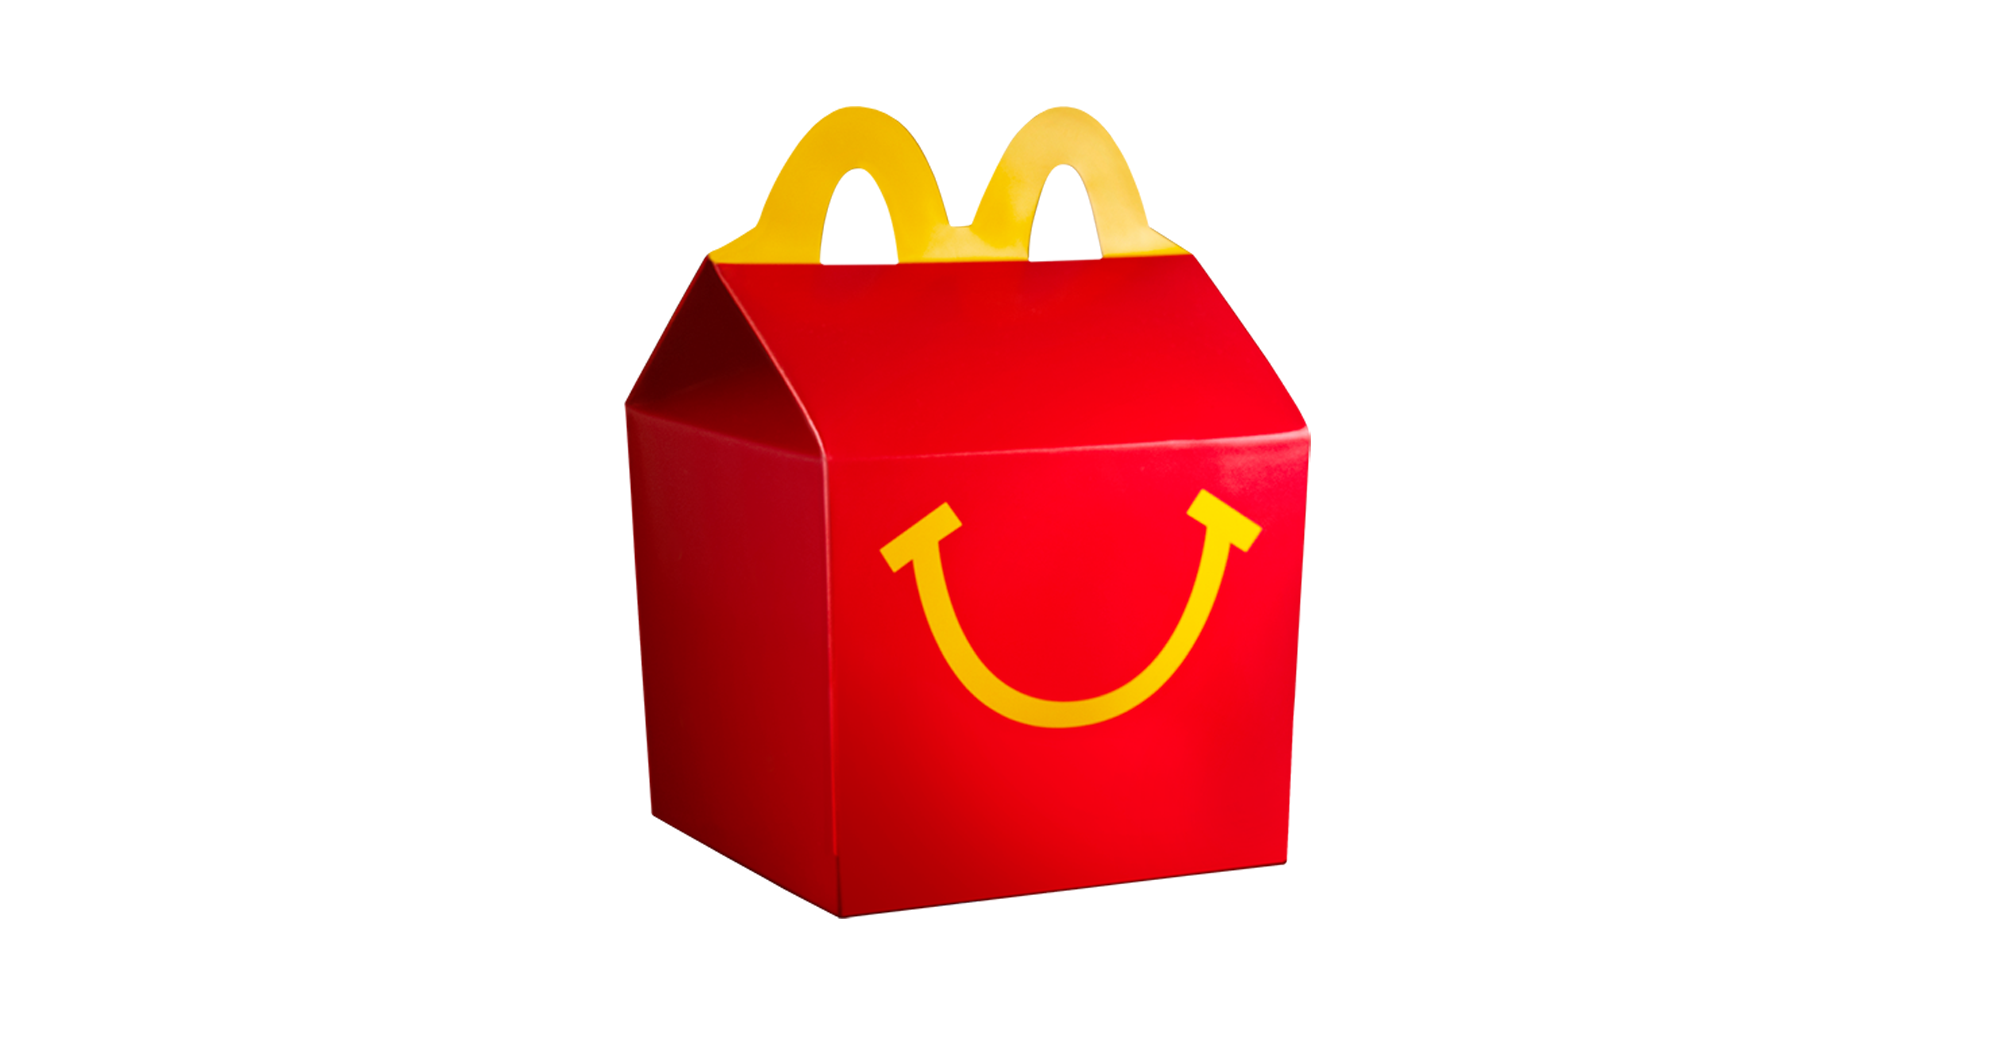 McDonalds New Happy Meal.